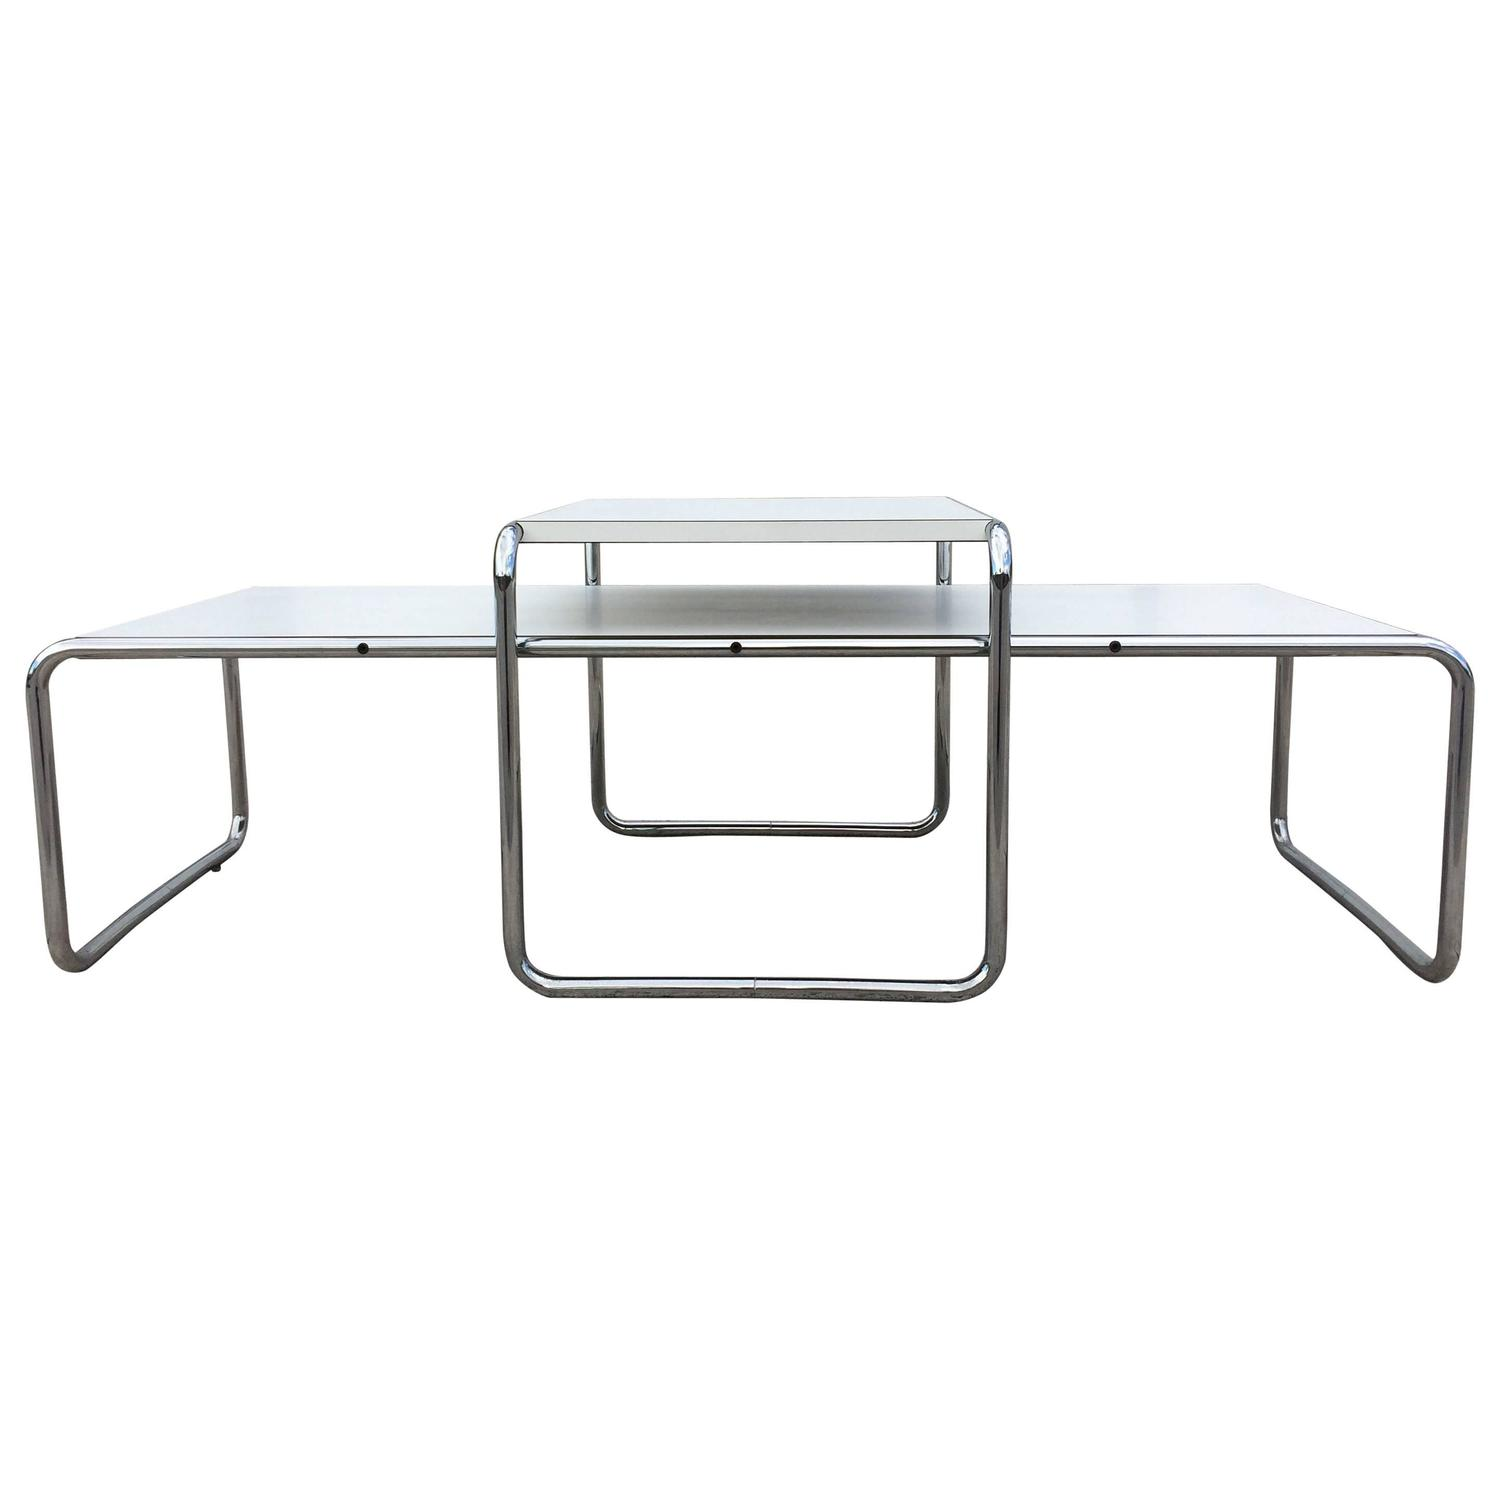 Vintage Laccio Tables Design Marcel Breuer for Knoll at 1stdibs